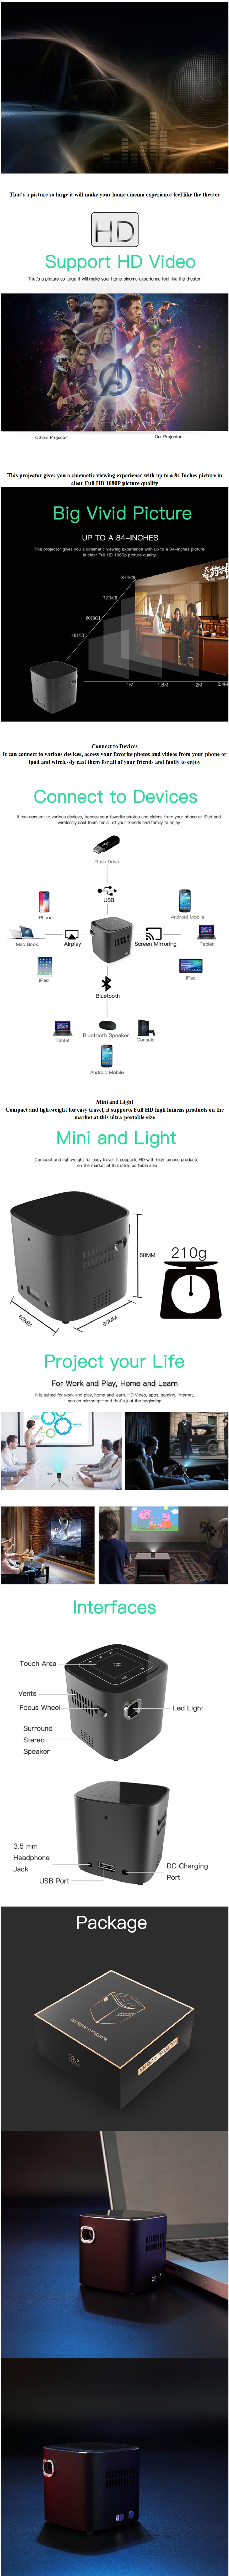 DL-S12 DLP Mini Projector Android 7.1.2OS Wifi bluetooth For Full HD 1080P Home Theater Projector